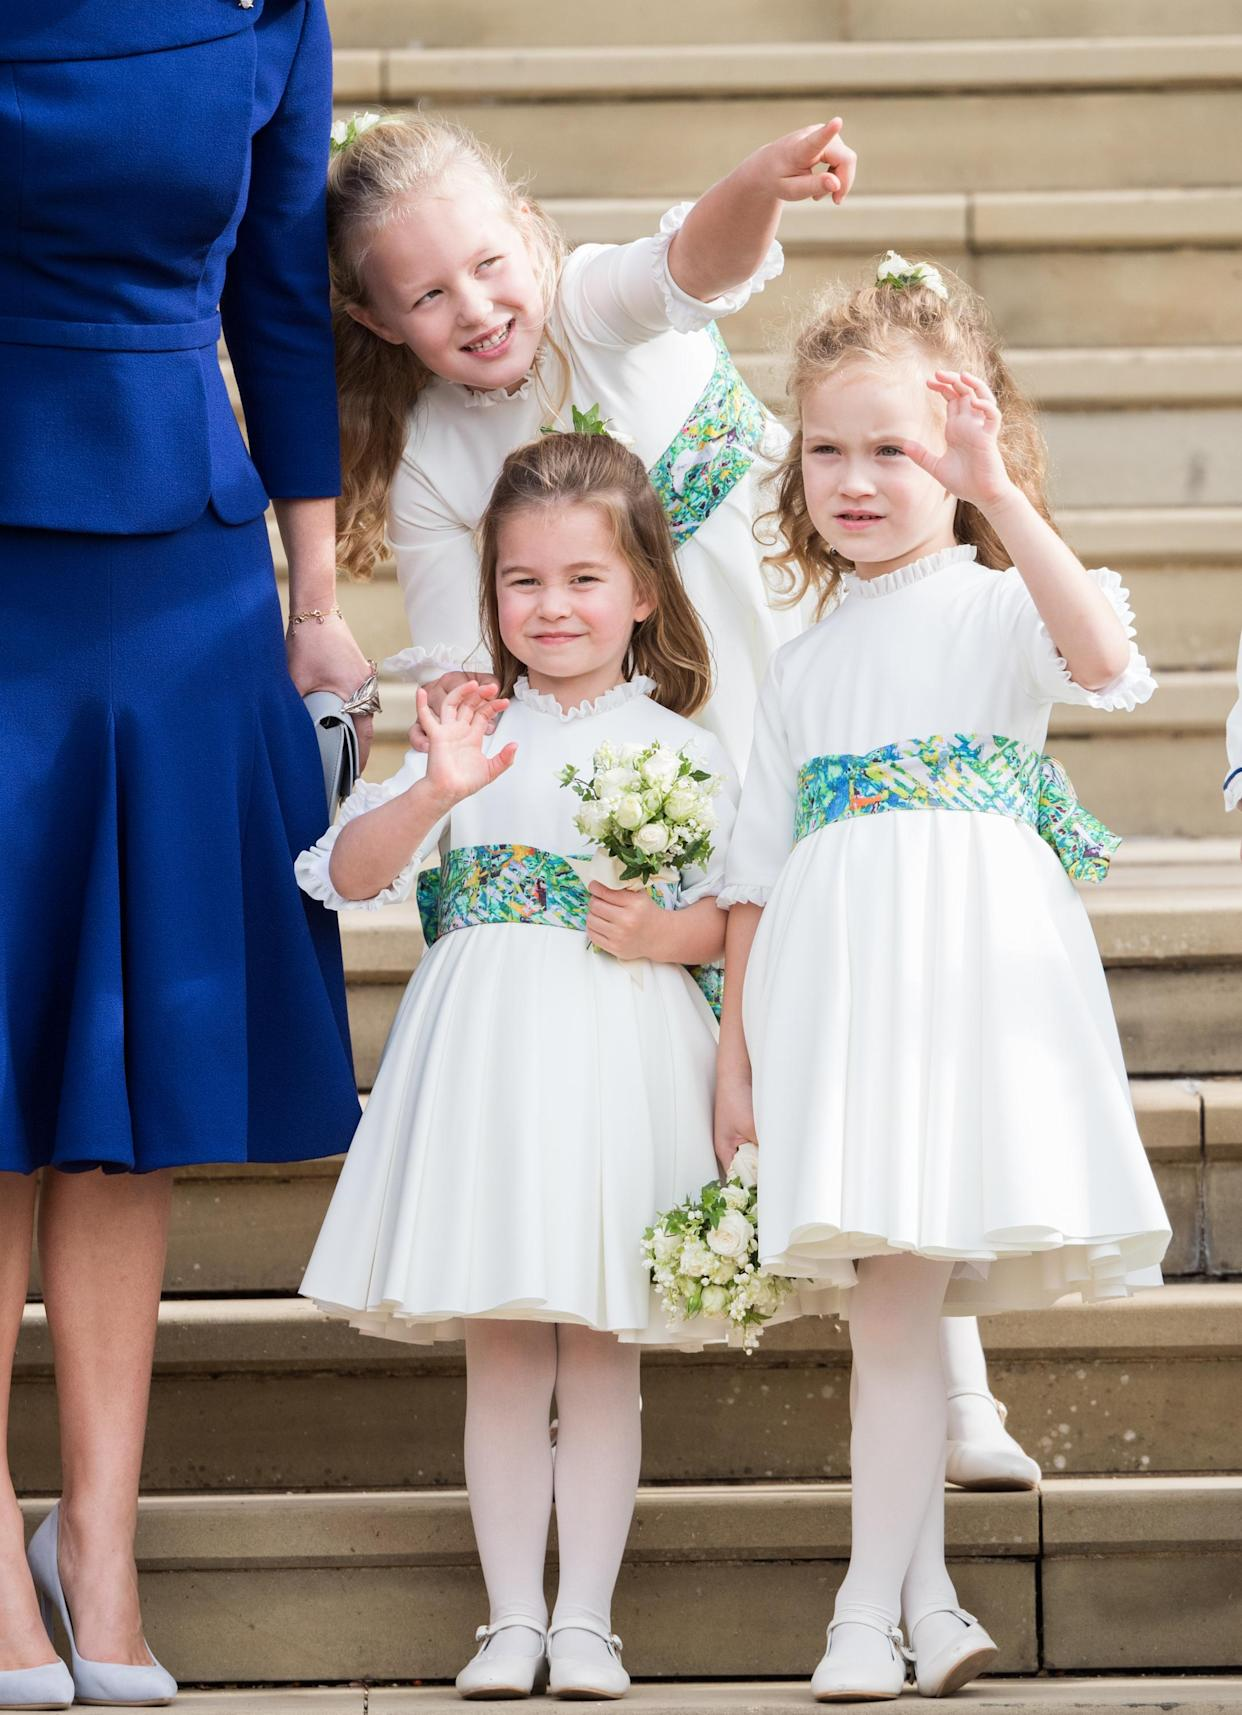 WINDSOR, ENGLAND - OCTOBER 12:  Bridesmaids Princess Charlotte of Cambridge, Savannah Phillips and Maud Windsor after the wedding of Princess Eugenie of York and Jack Brooksbank at St. George's Chapel on October 12, 2018 in Windsor, England.  (Photo by Pool/Samir Hussein/WireImage)